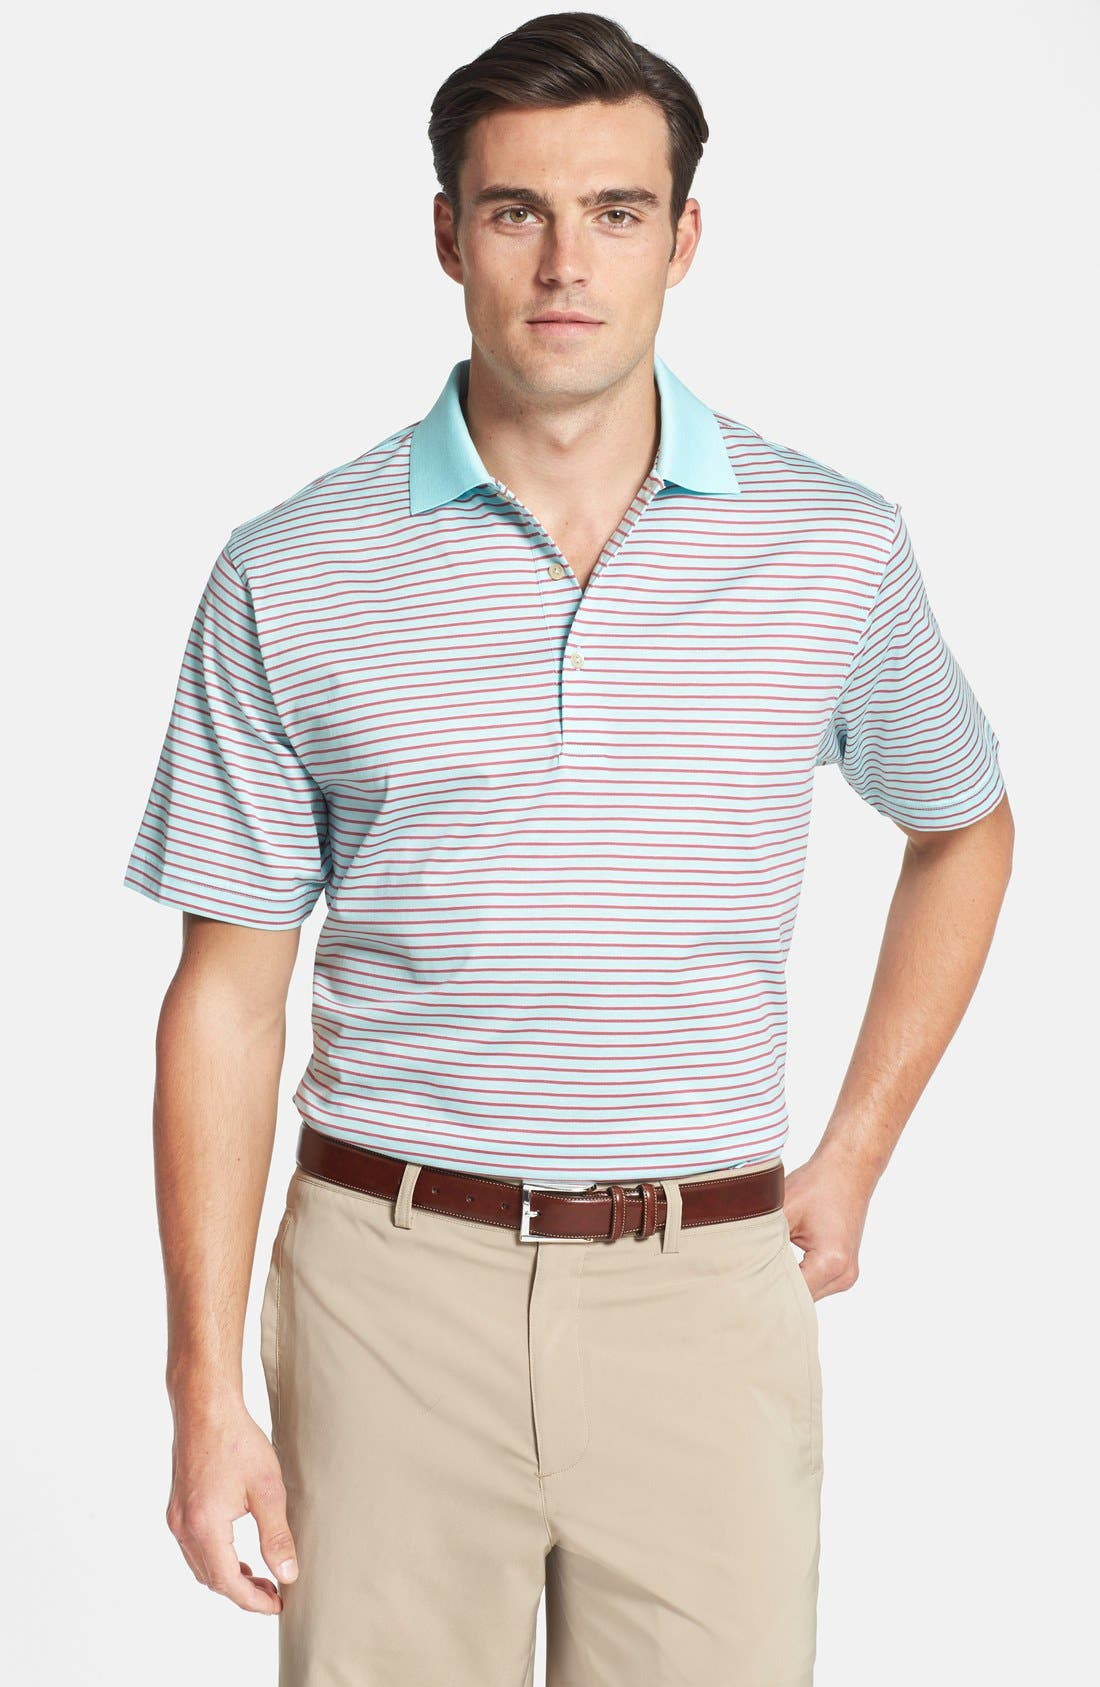 Alternate Image 1 Selected - Peter Millar 'Kilffman' Stripe Knit Polo